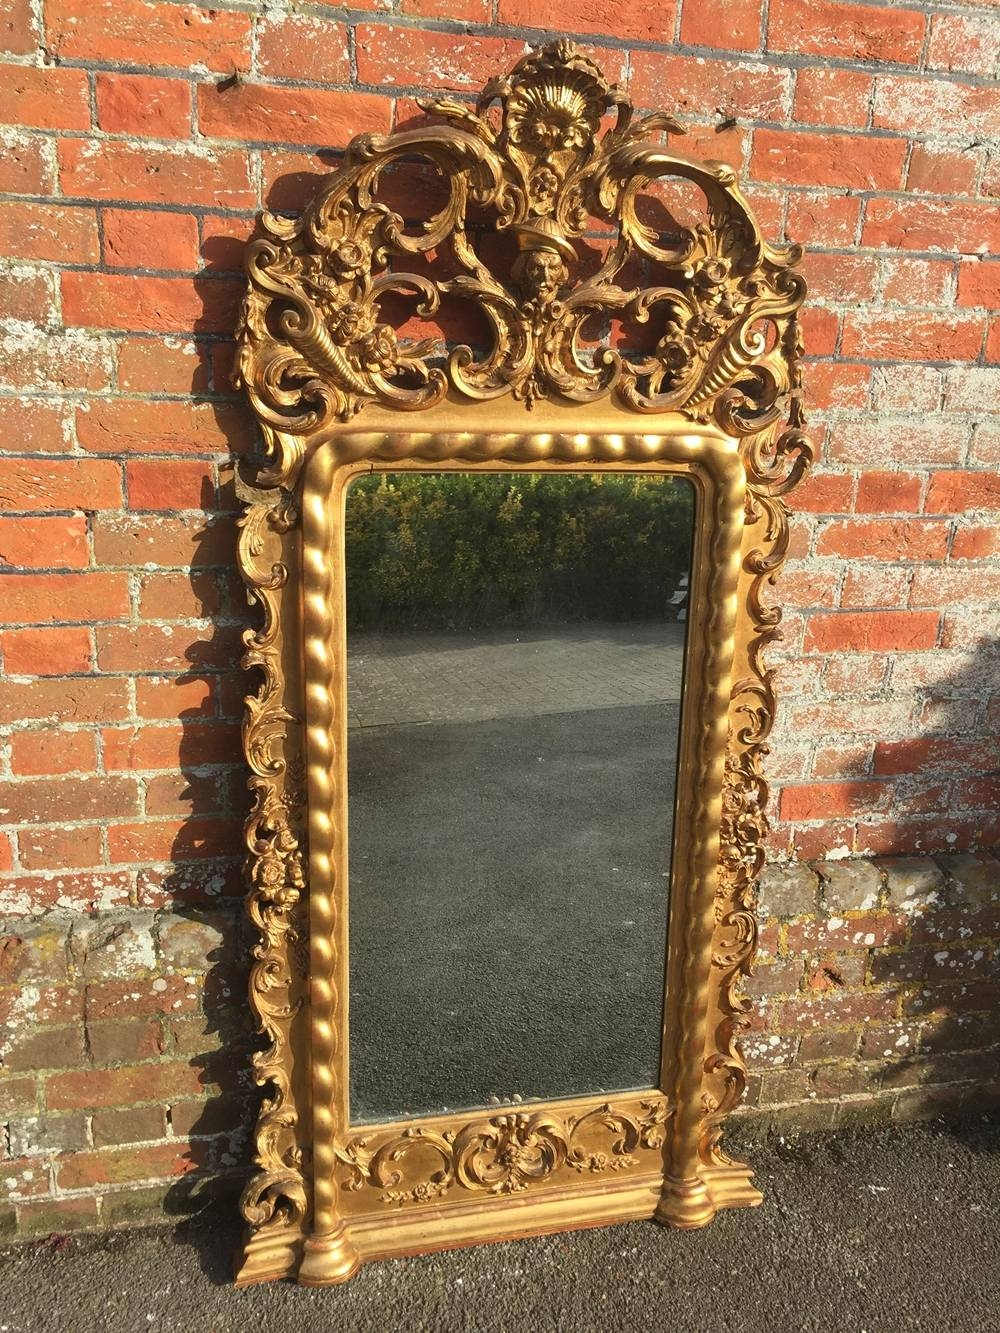 Large Overmantle Mirrors Uk – Antique Overmantle Mirrors For Sale For Large French Mirrors (View 12 of 15)